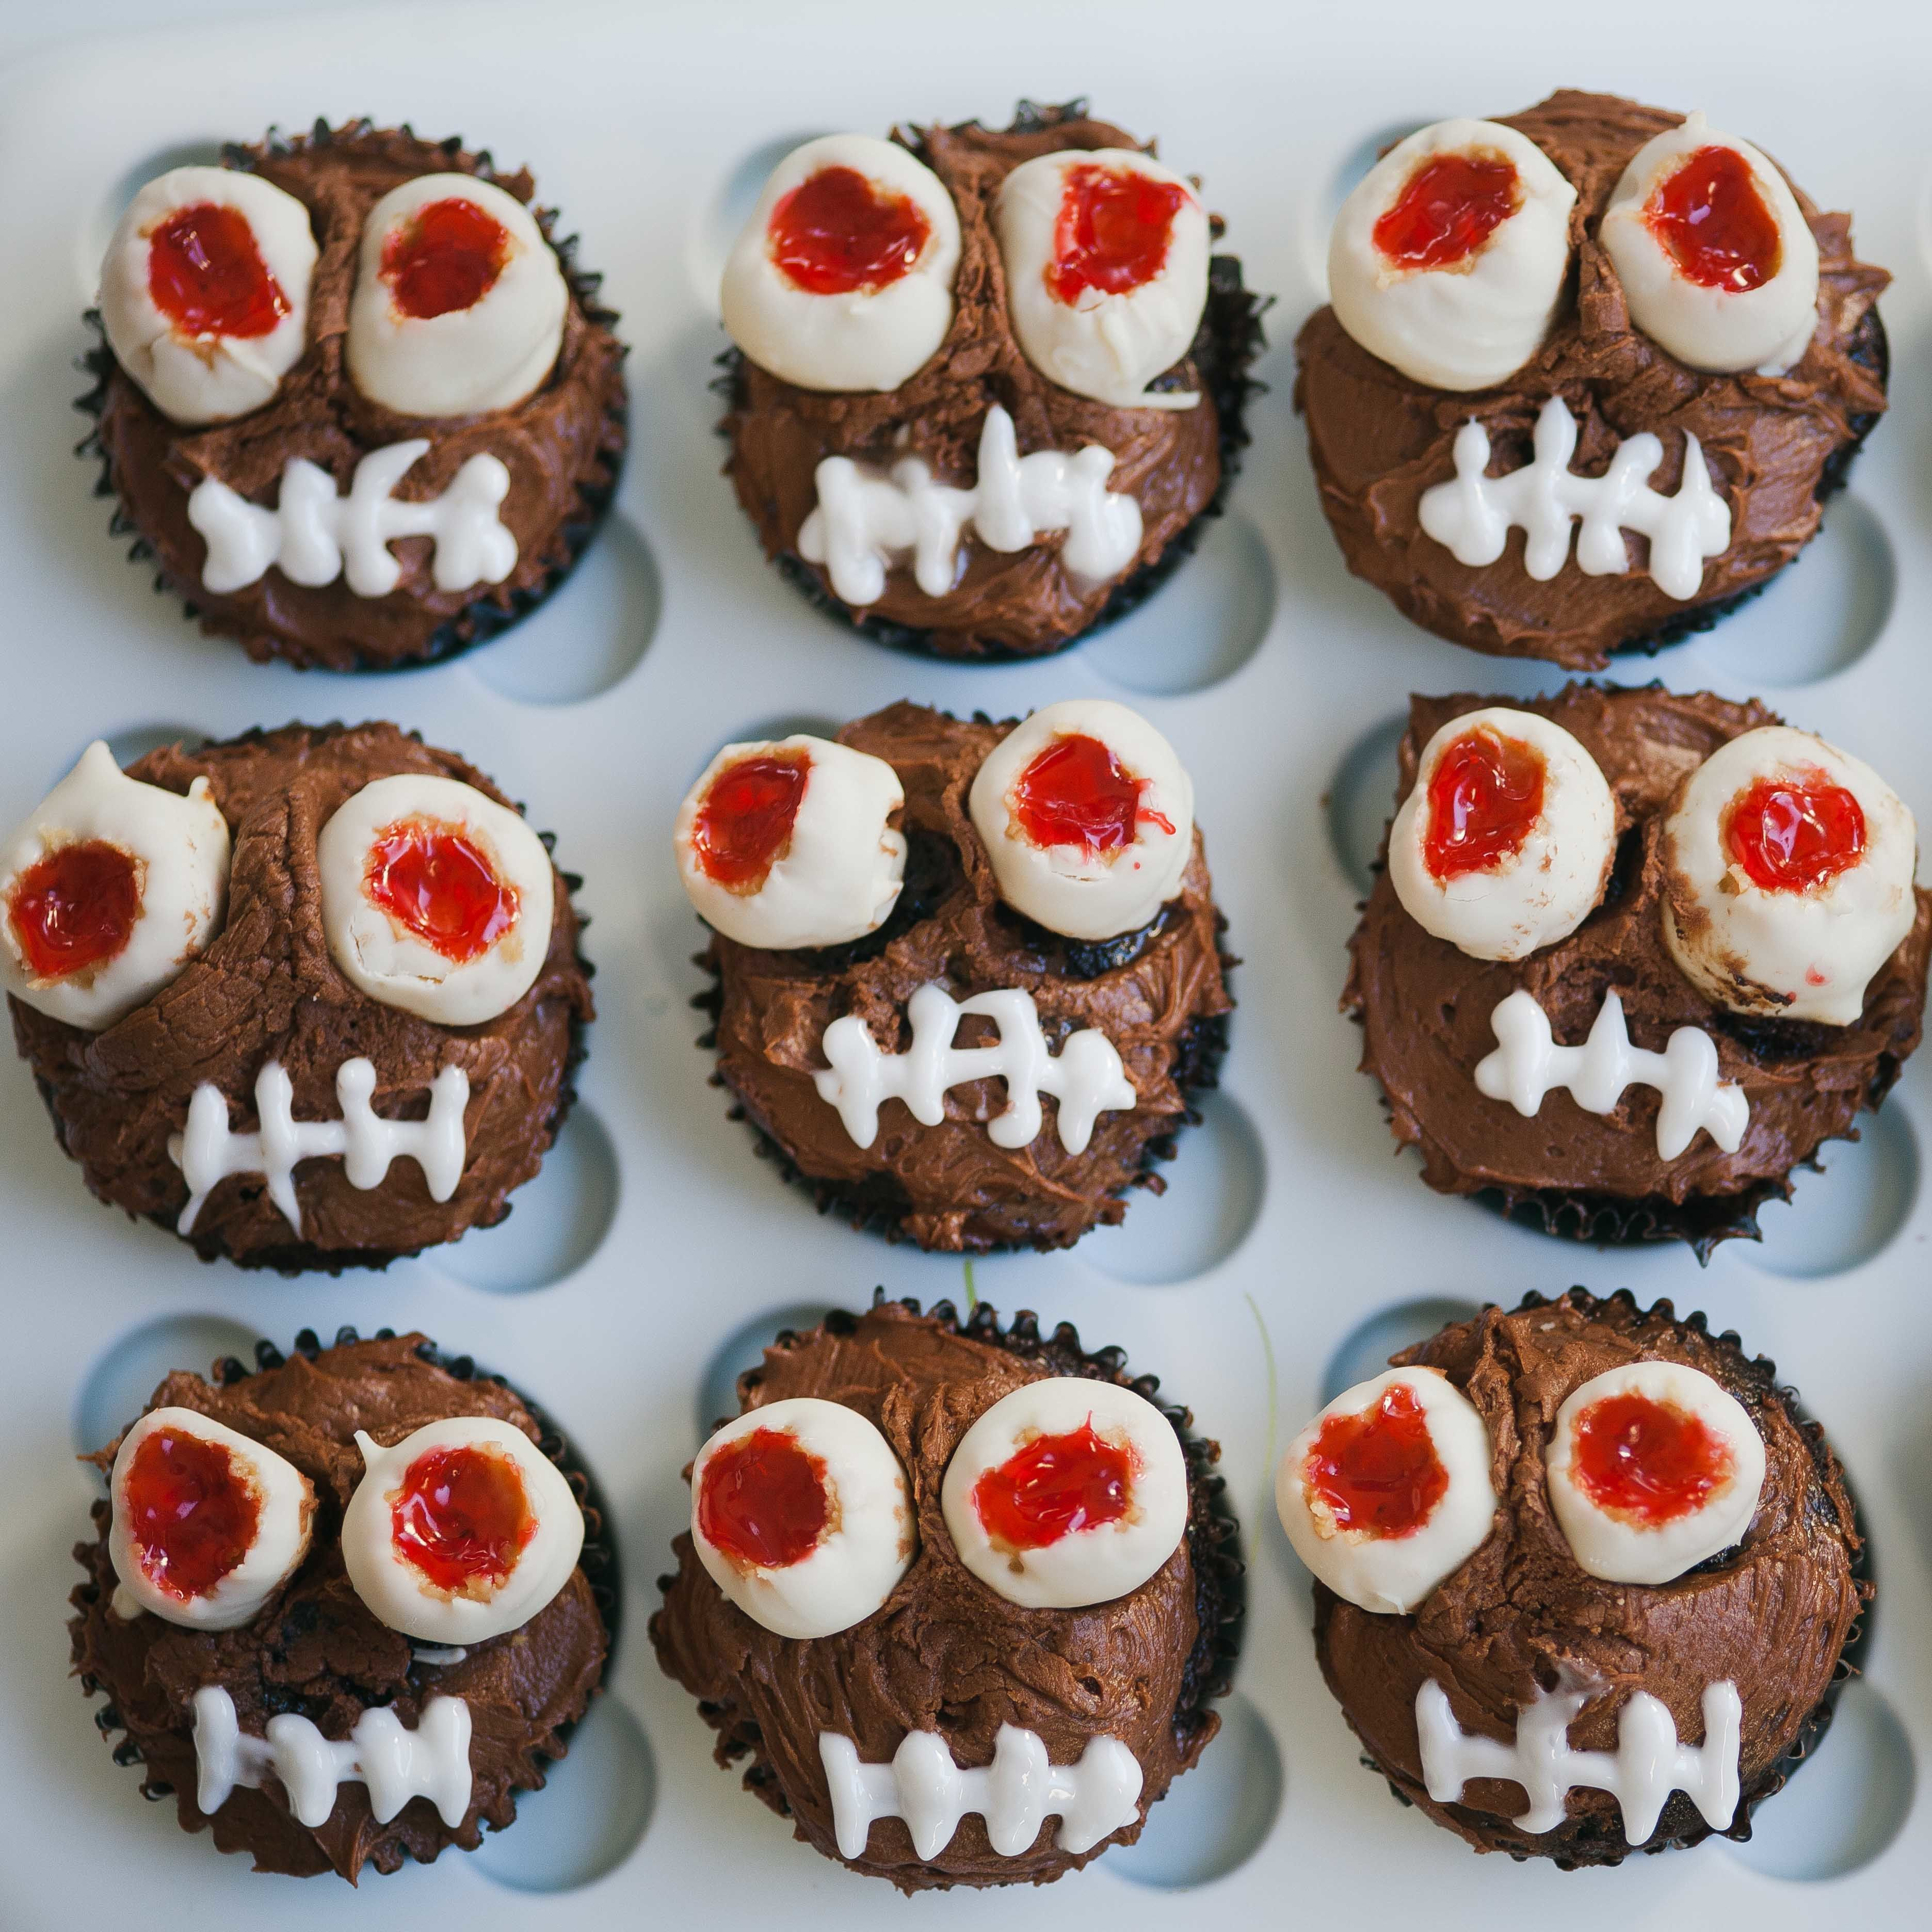 Halloween Chocolate Cupcakes with Monster Peanut Butter Eyes AllrecipesPhoto